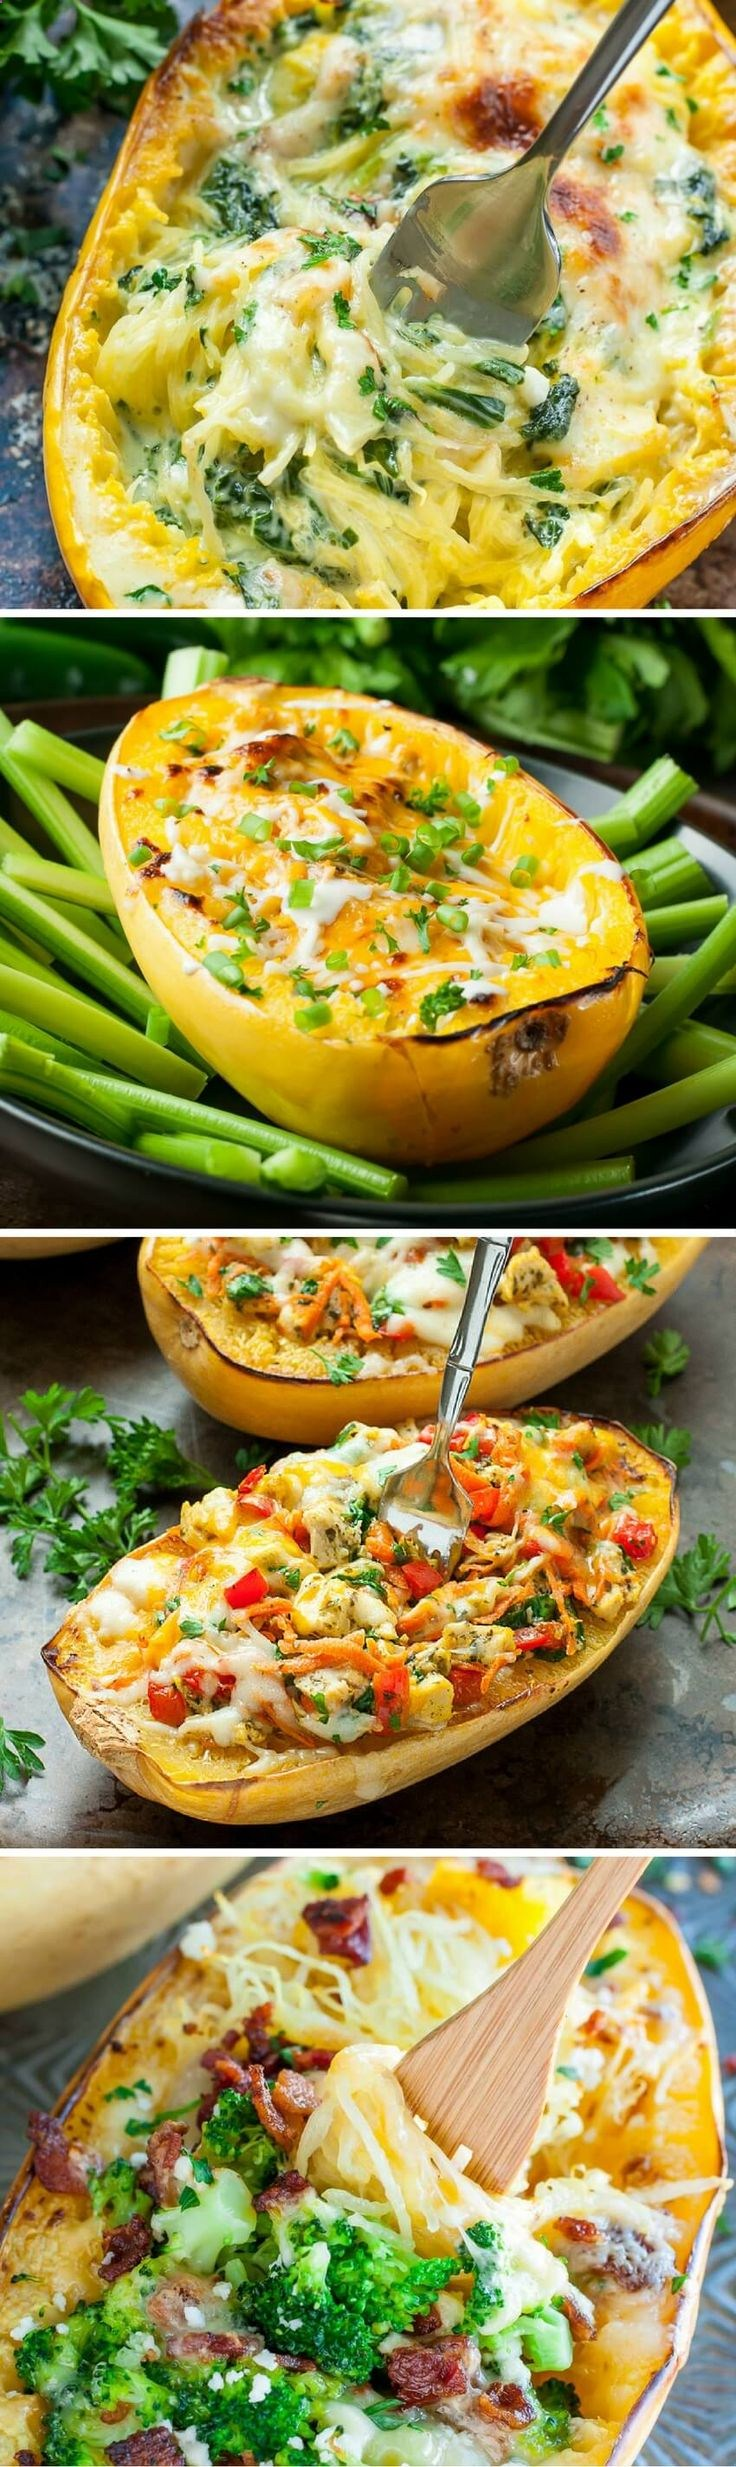 7 Ways to Stuff a Spaghetti Squash :: with vegan, vegetarian, and t-rex options available, theres something for everyone here!